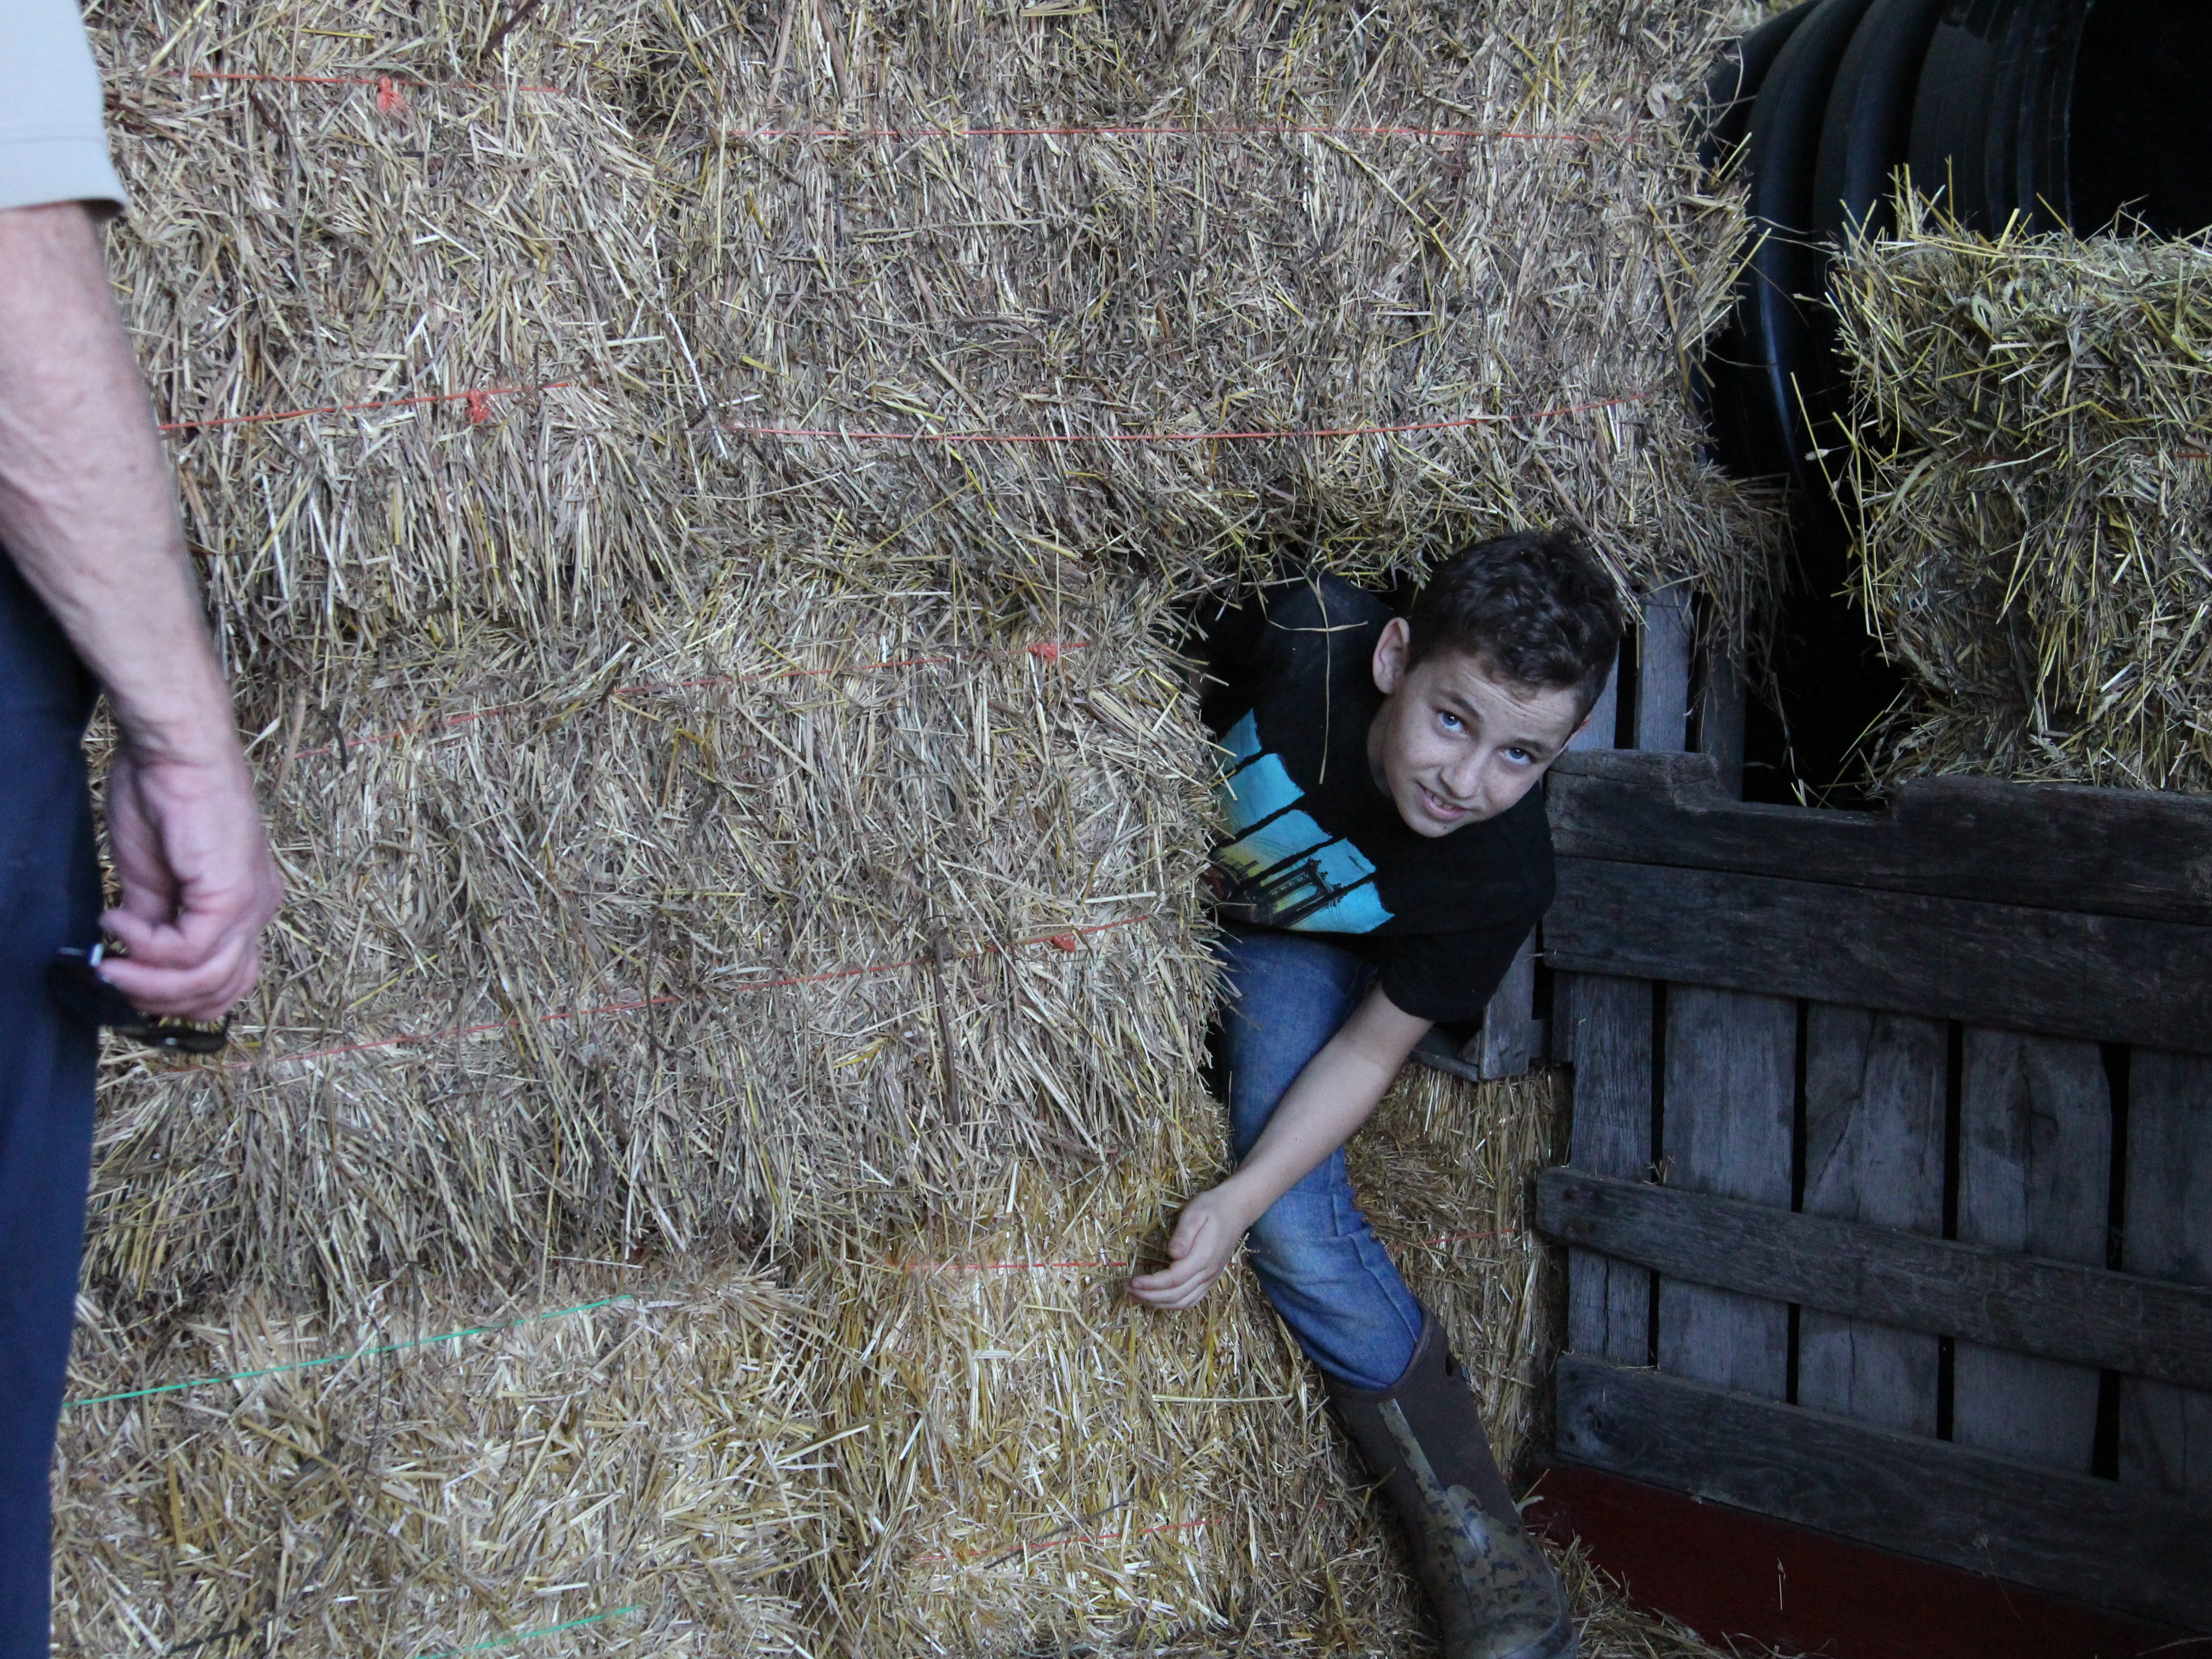 Hunter Faust, 10, slips through an opening in the hay maze at Applefest, which took place Saturday at Lawrence Orchards.